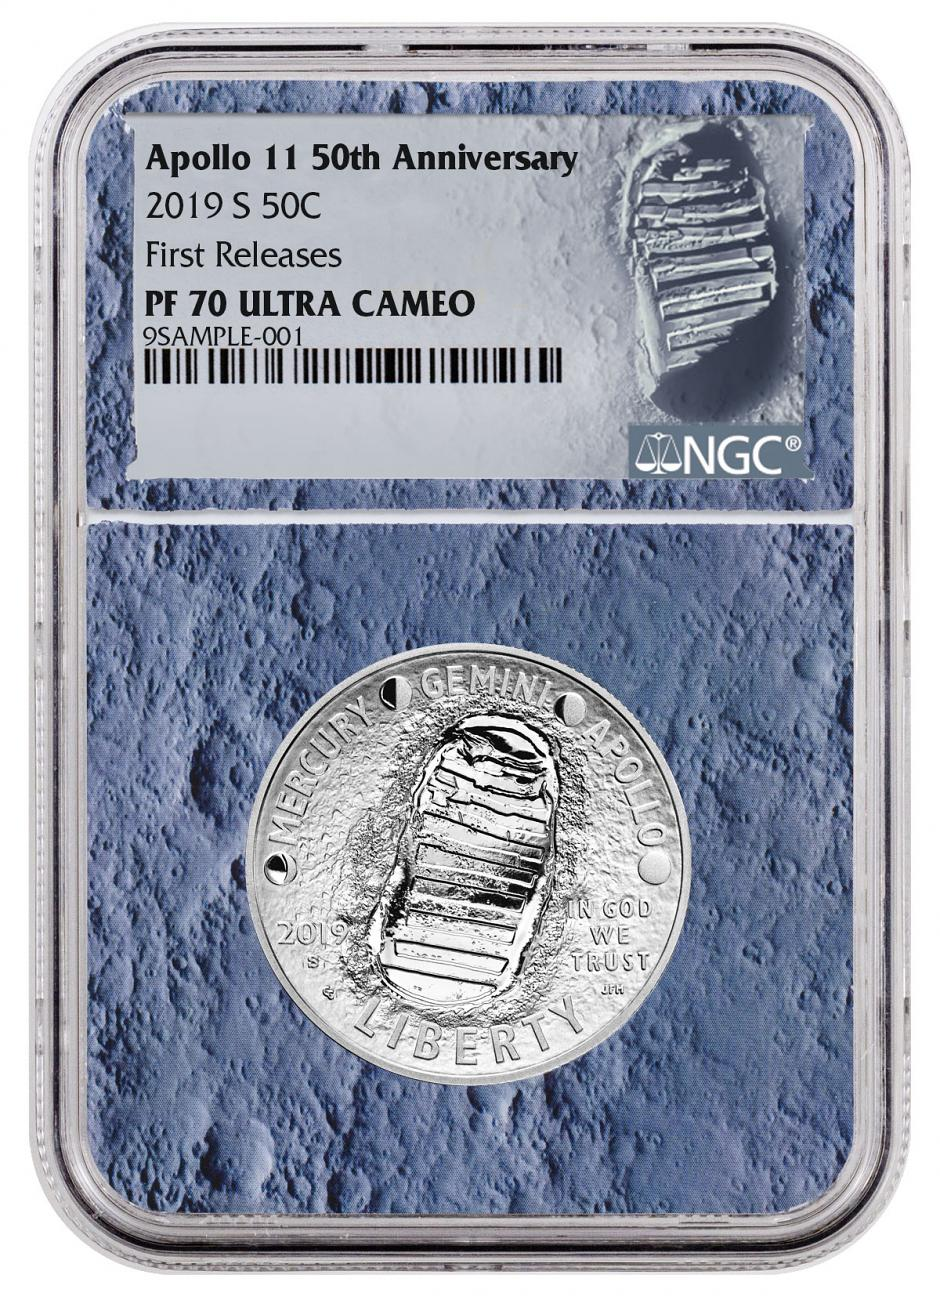 2019-S US Apollo 11 50th Anniversary Commemorative Clad Half Dollar Proof Coin NGC PF70 FR With Apollo 11 Mission Patch Moon Core Holder